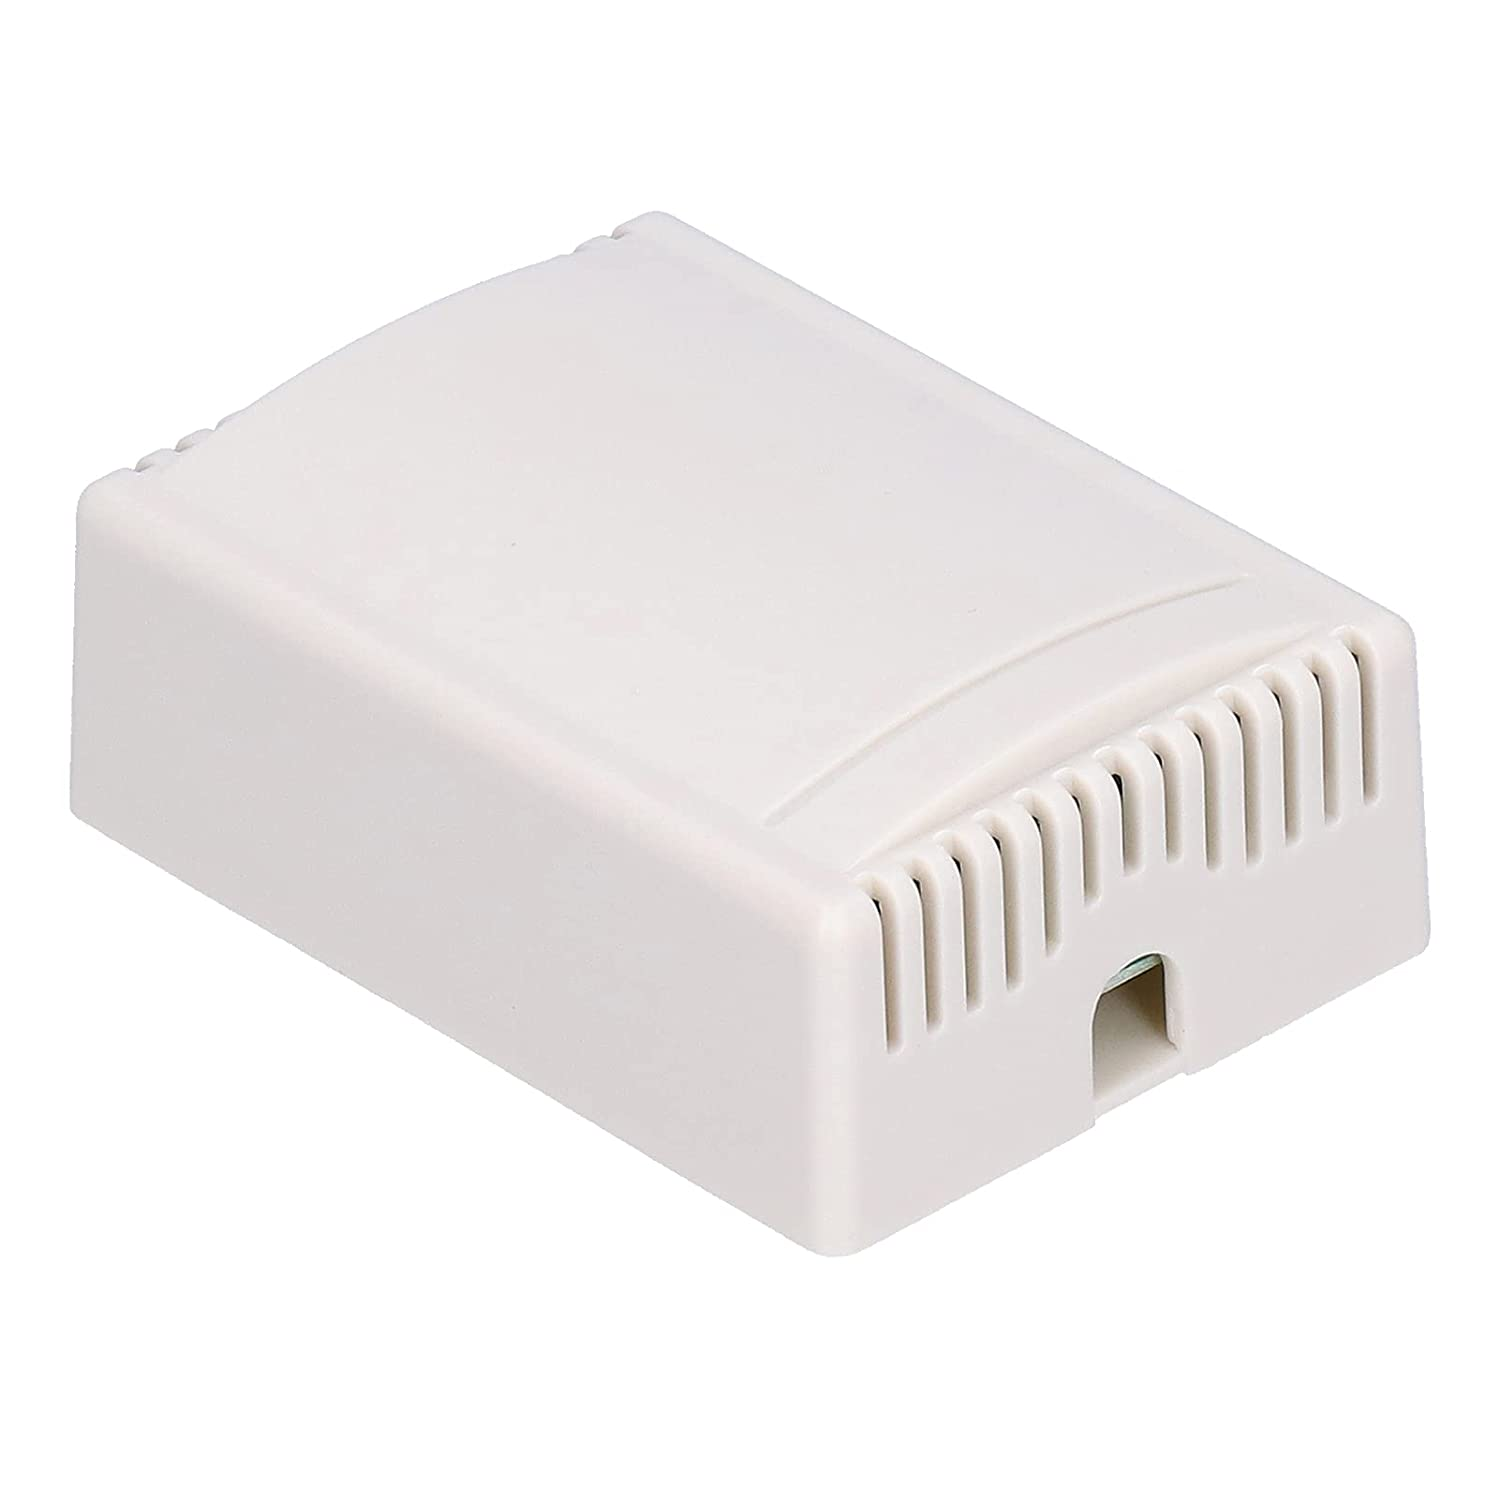 Fafeicy Remote Control Denver Mall SEAL limited product Switch ABS Receiver Modul 2 Wireless Way